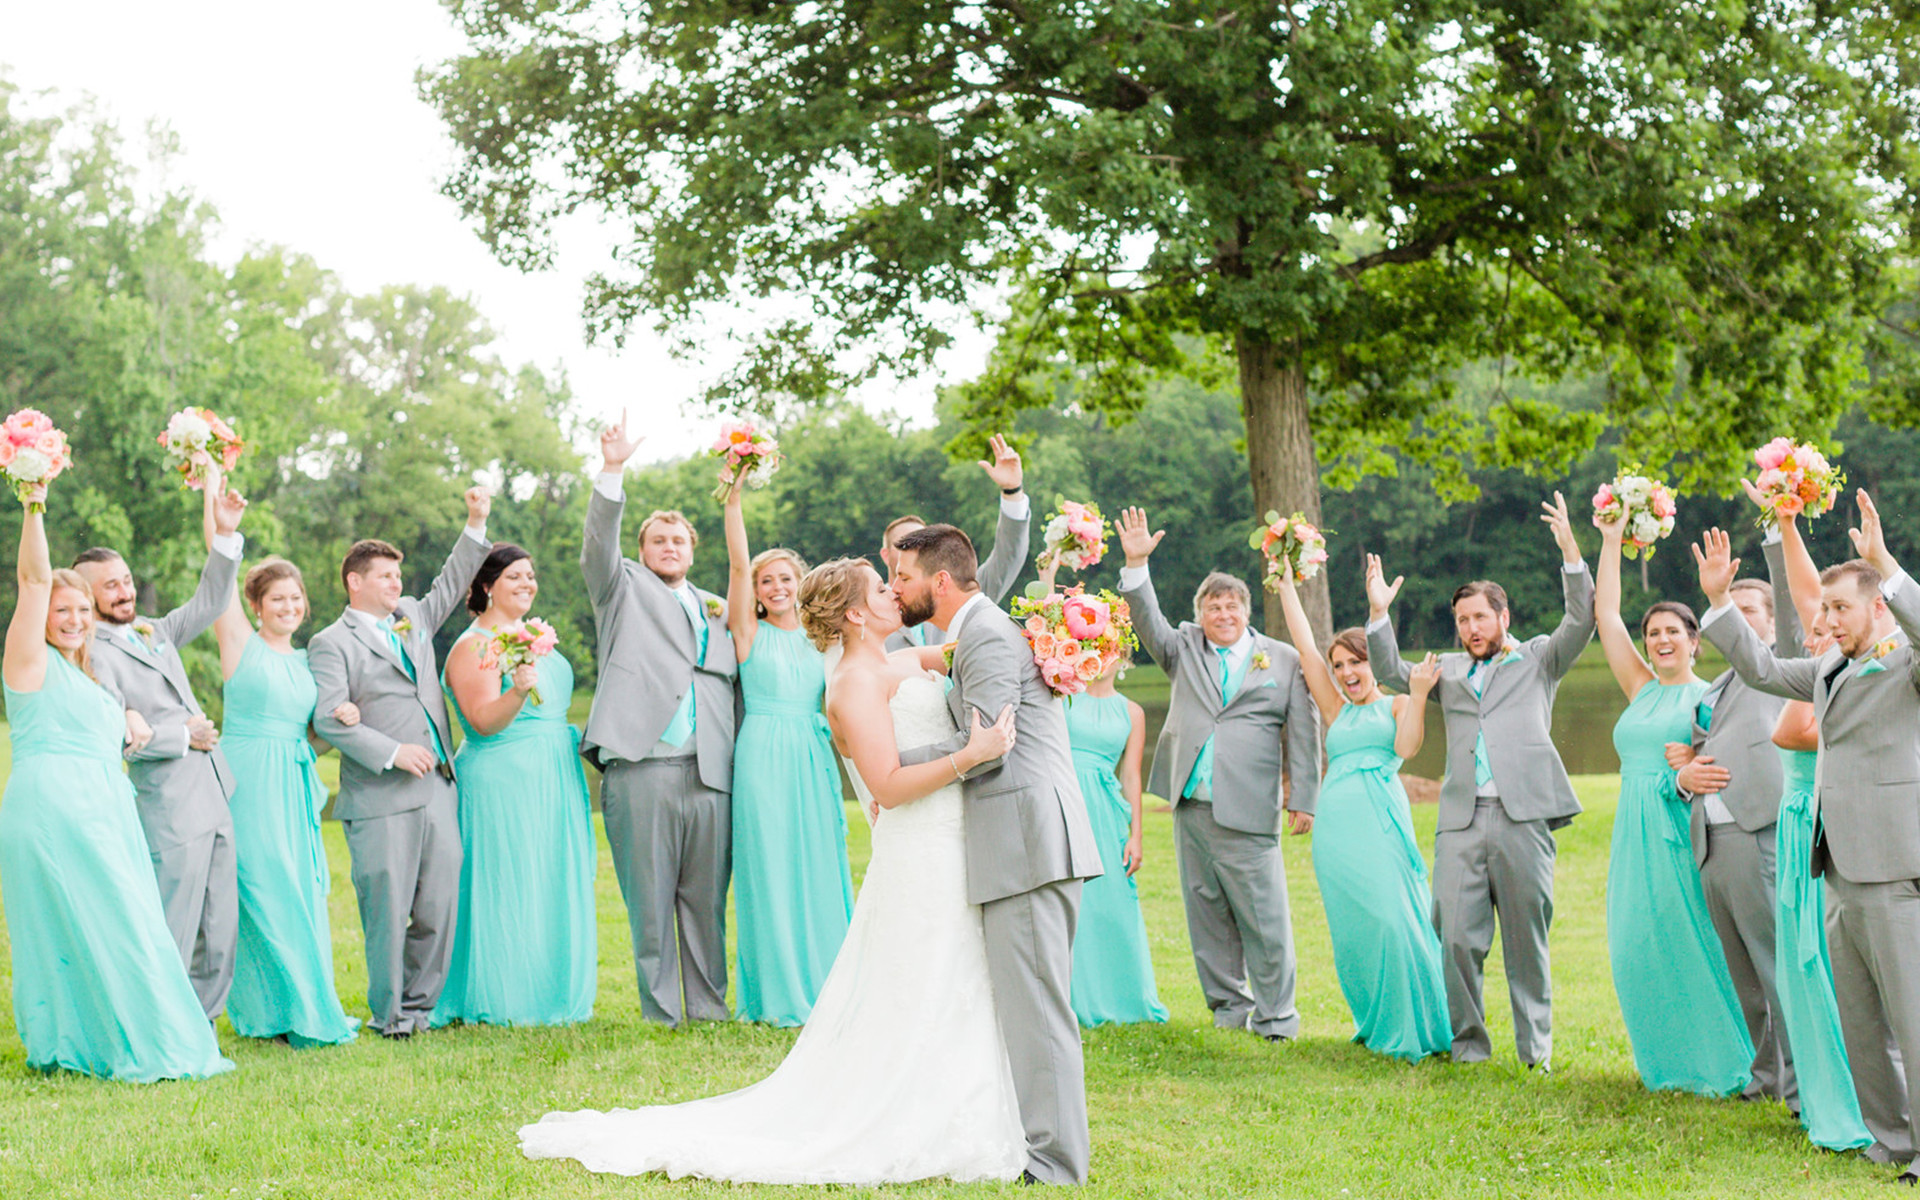 Bright June Wedding at an Eclectic Farm with a Southern Twist